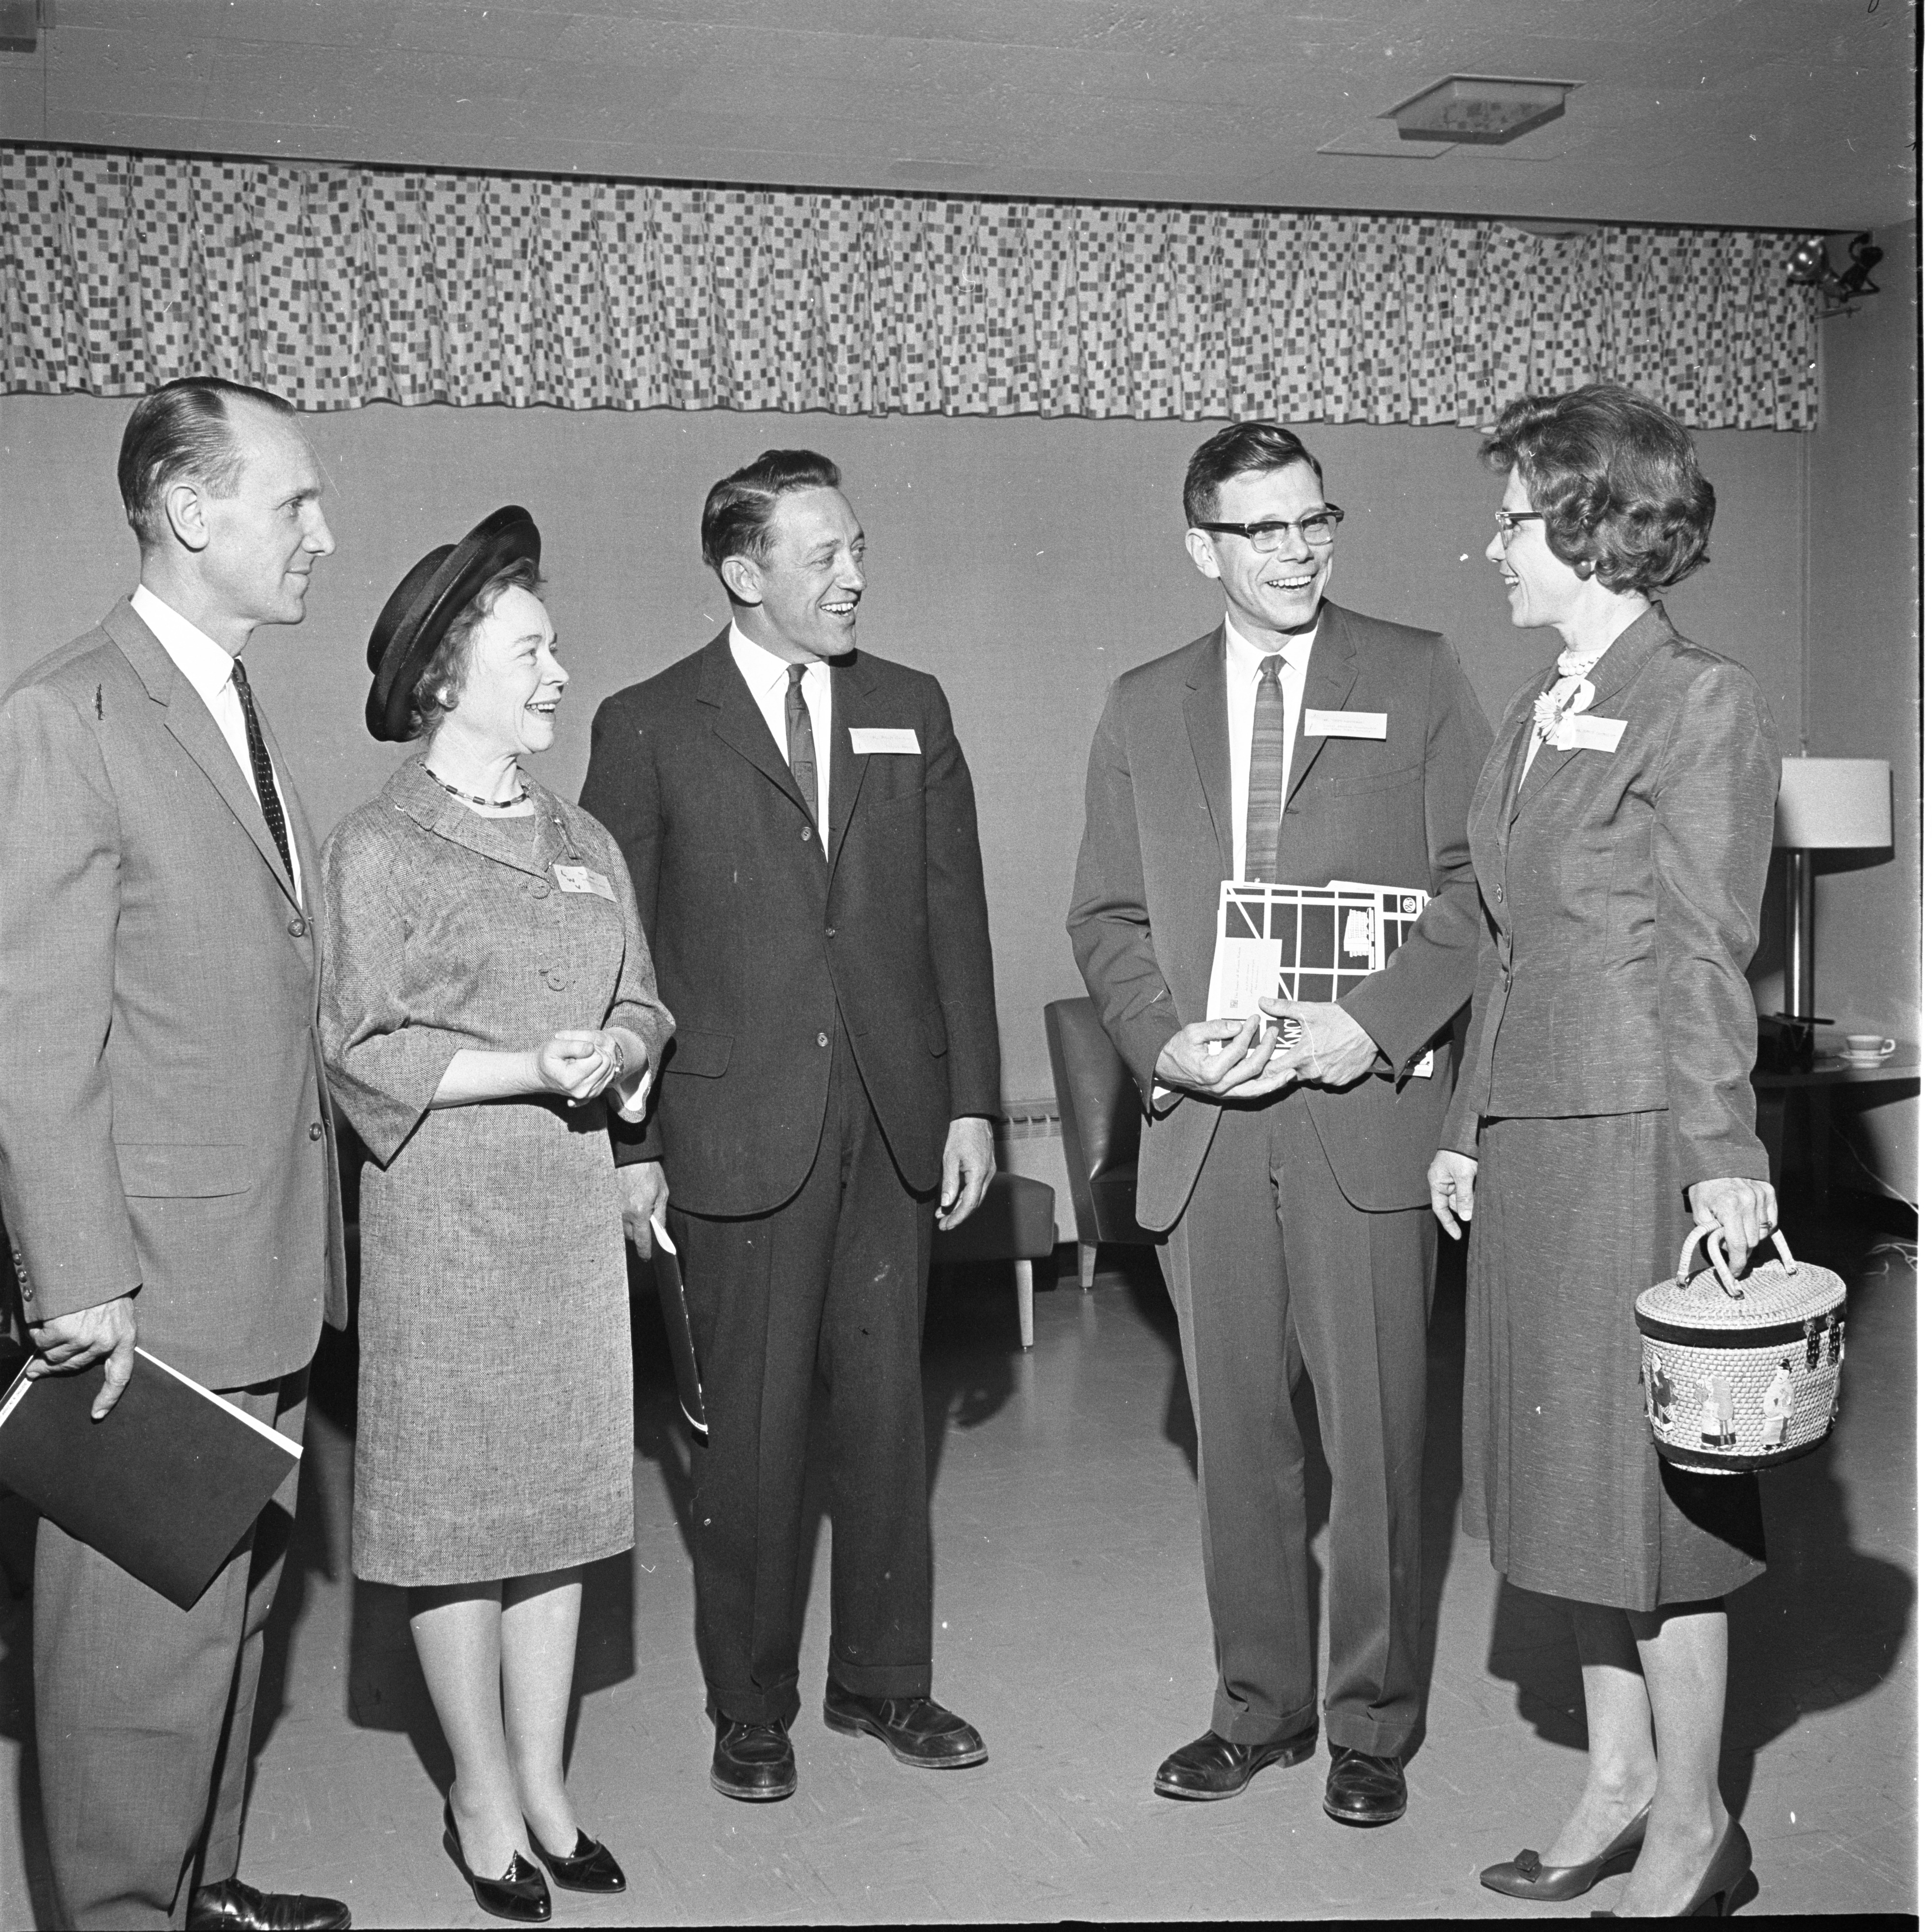 Ann Arbor School Officials & LWV Members Chat At A League Of Women Voters Meeting, April 1963 image